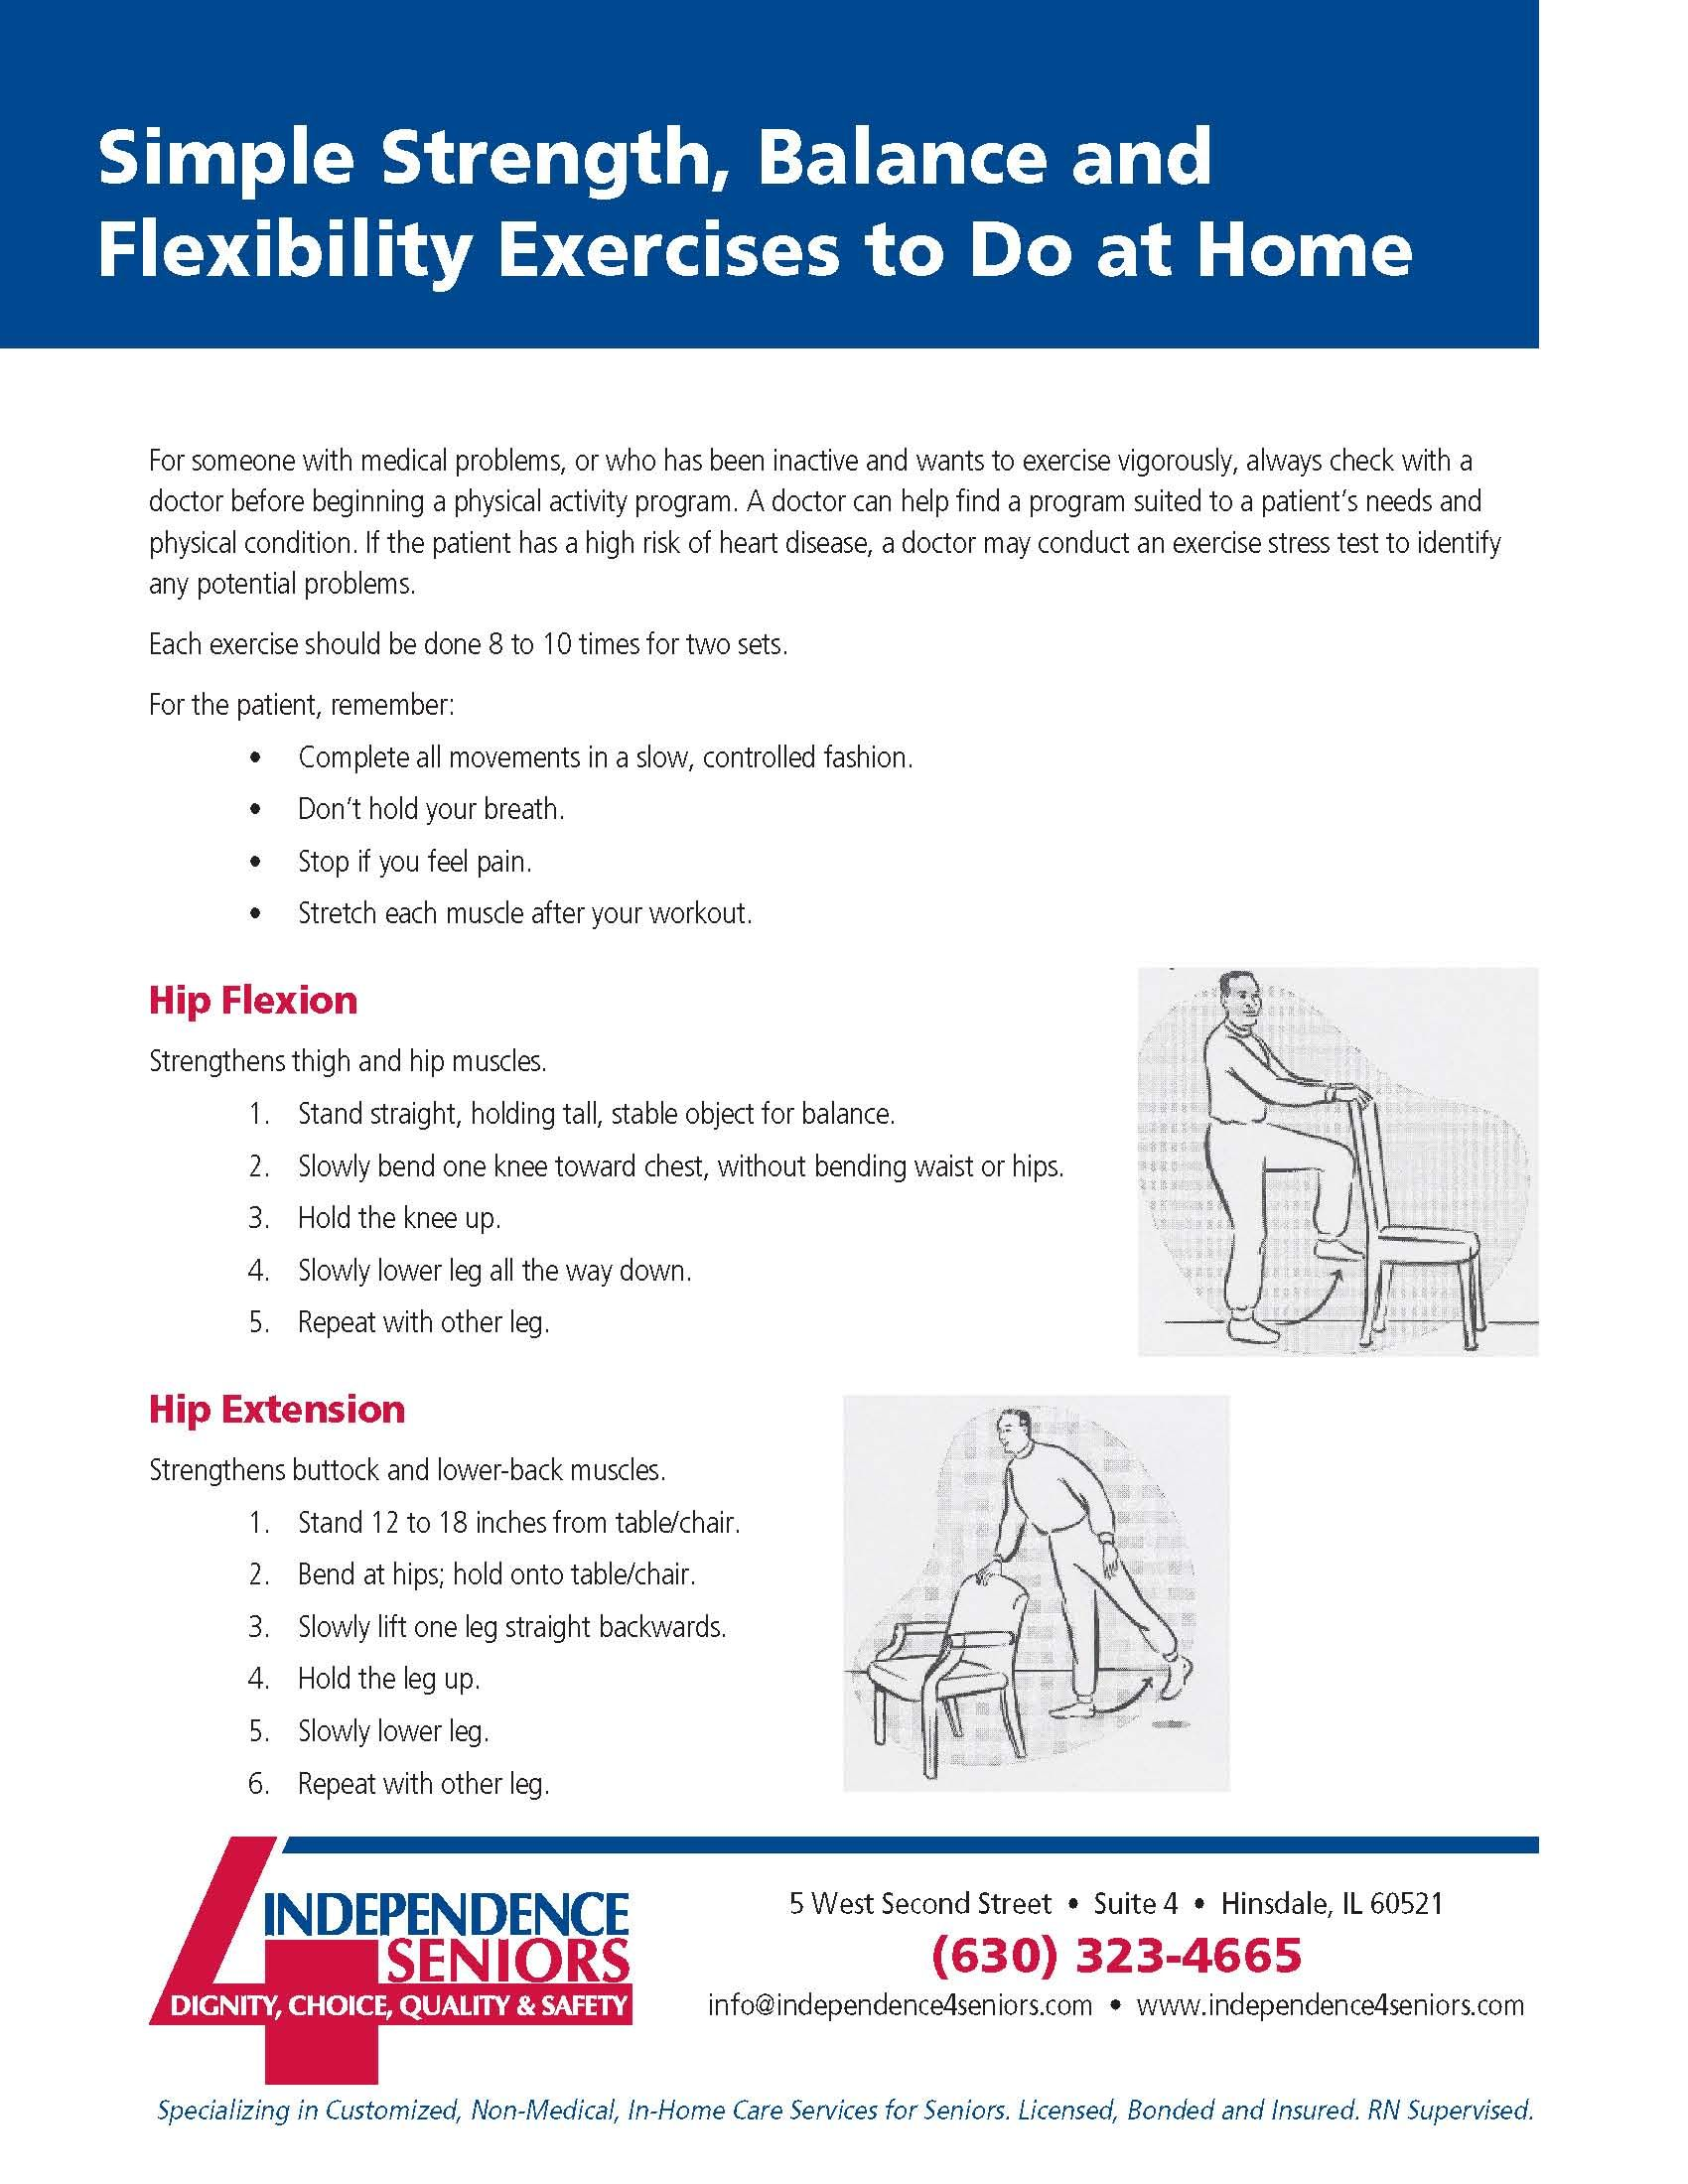 Simple Strength Balance and Flexibility Exercises to Do at Home